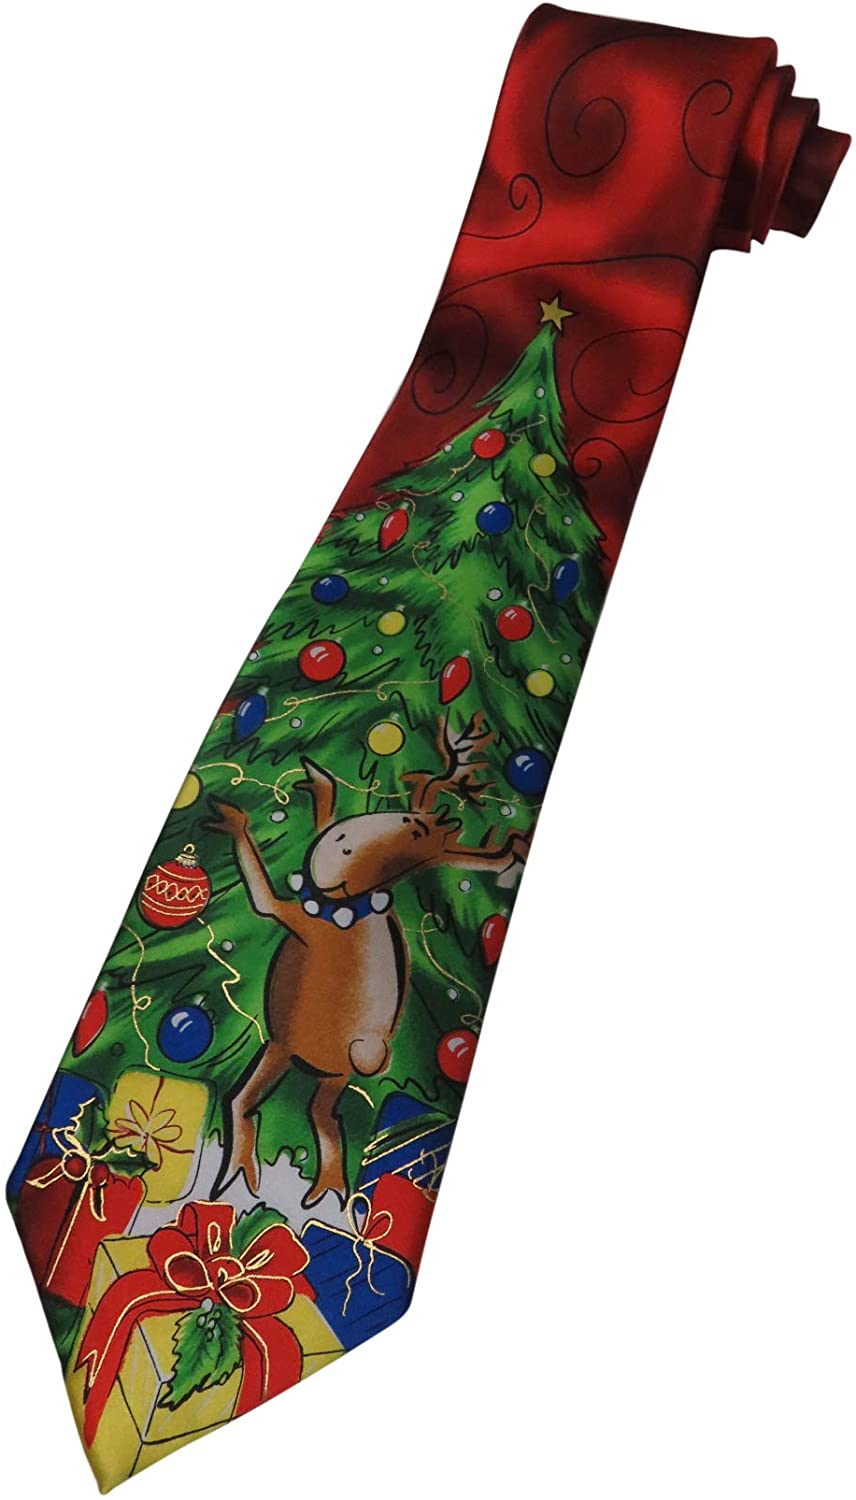 Jerry Garcia Neck Tie Collection 56 Dracula Claus Christmas